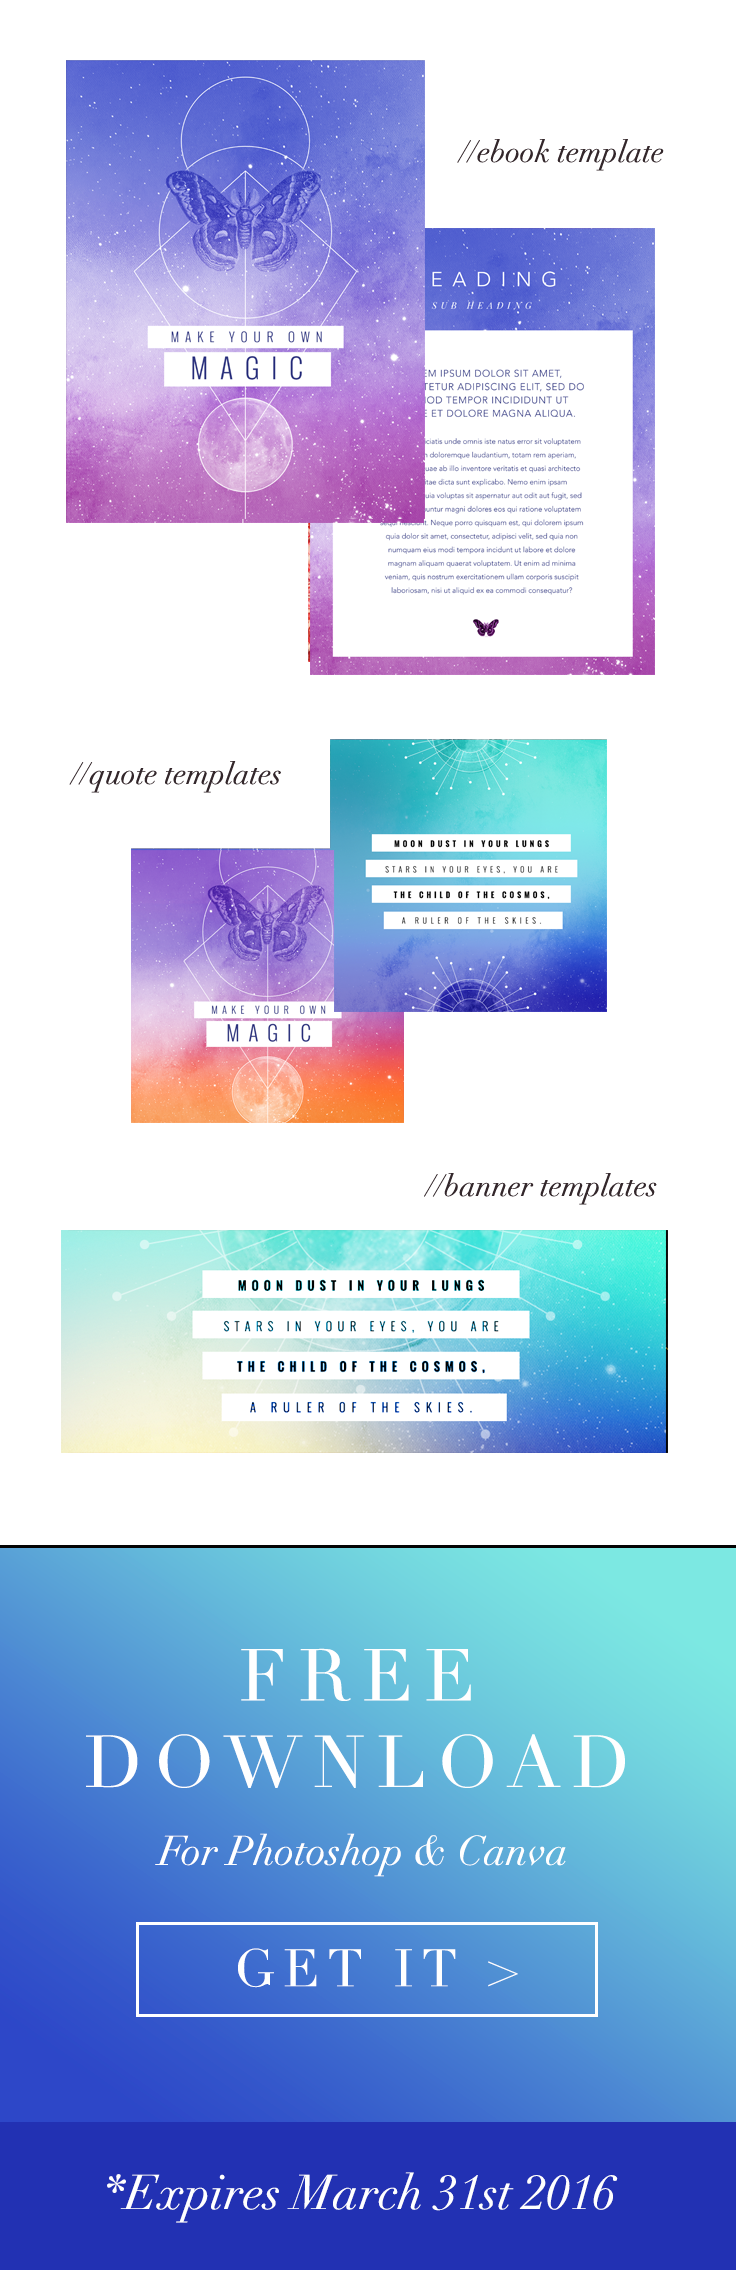 Sarah Hart – March: Free branding template for photoshop